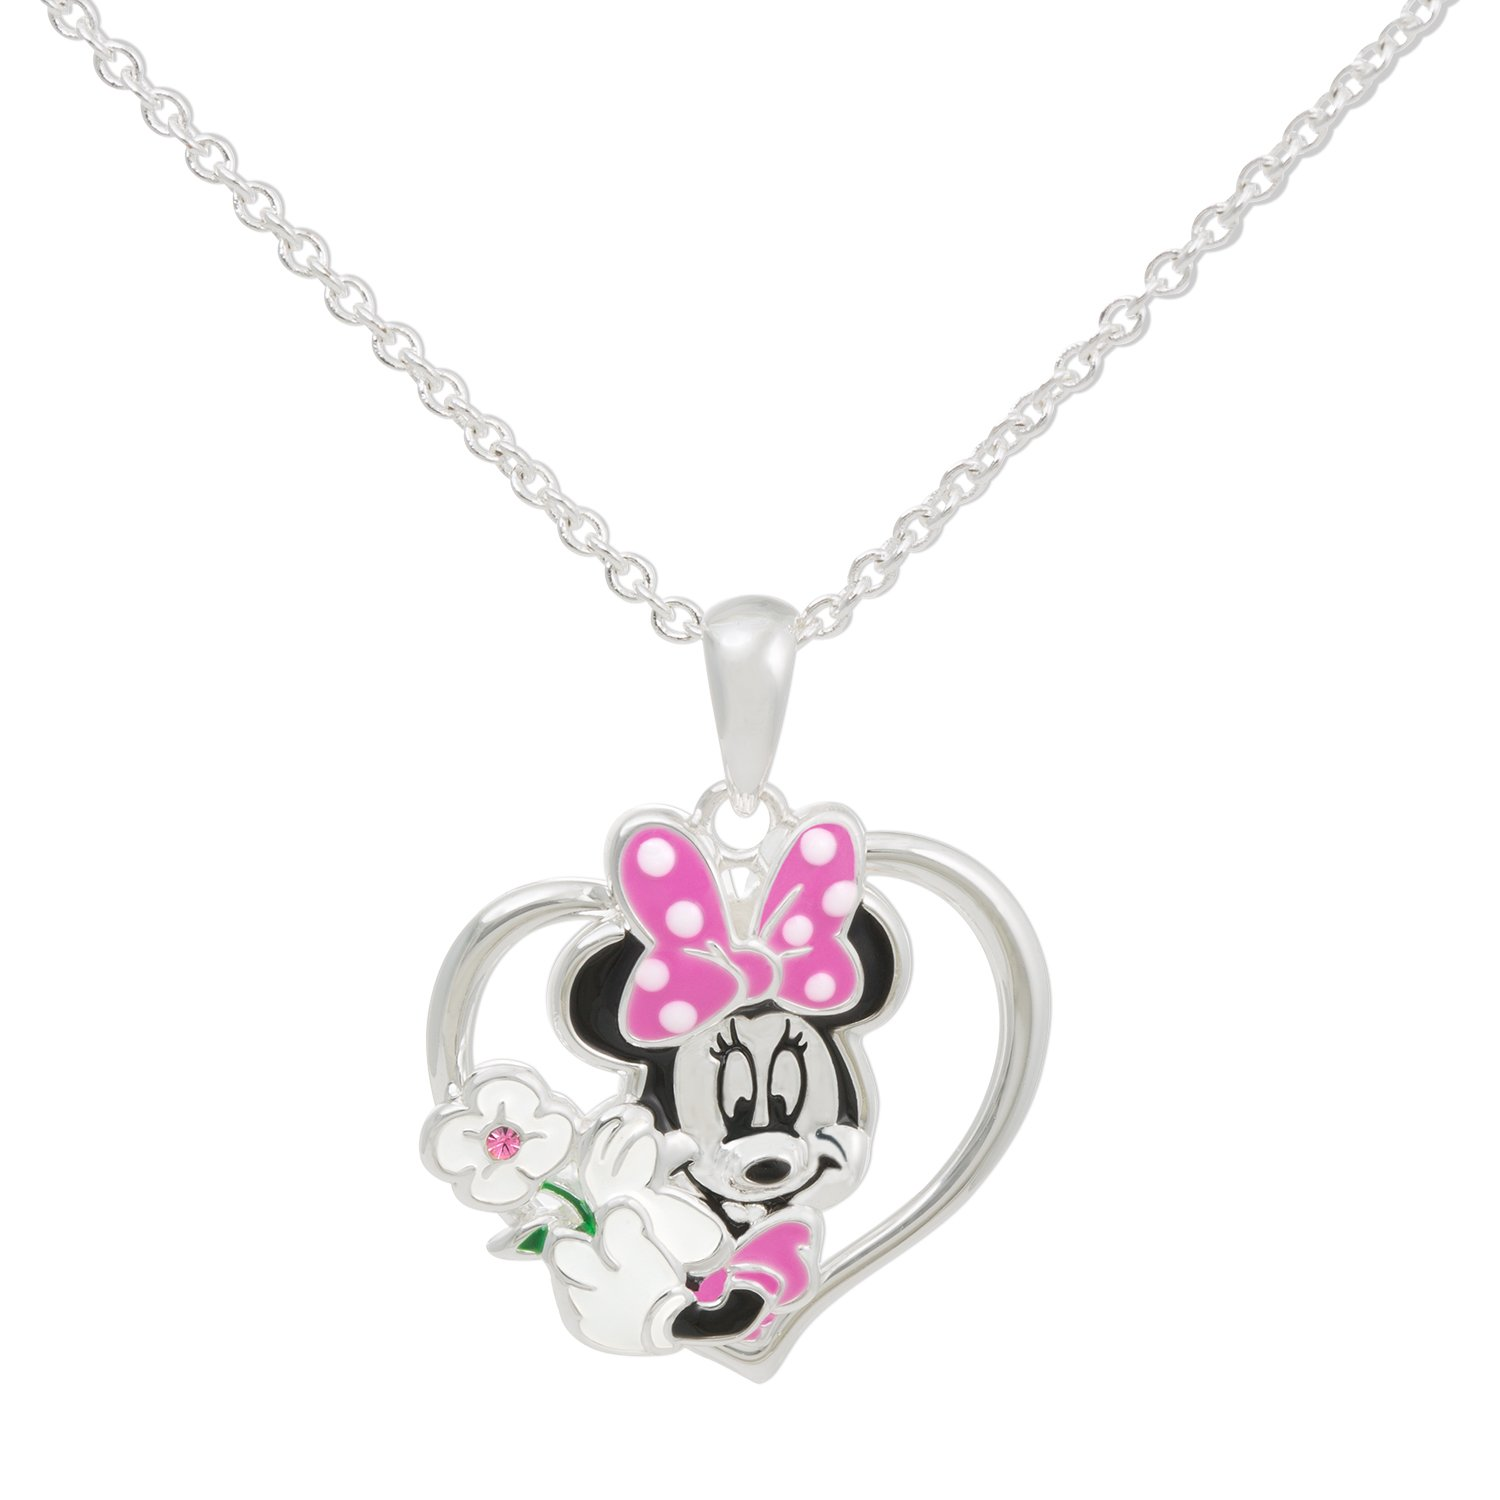 Disney Minnie Mouse Heart Silver Plated Crystal Pendant Necklace, 18'' Mickey's 90th Birthday Anniversary